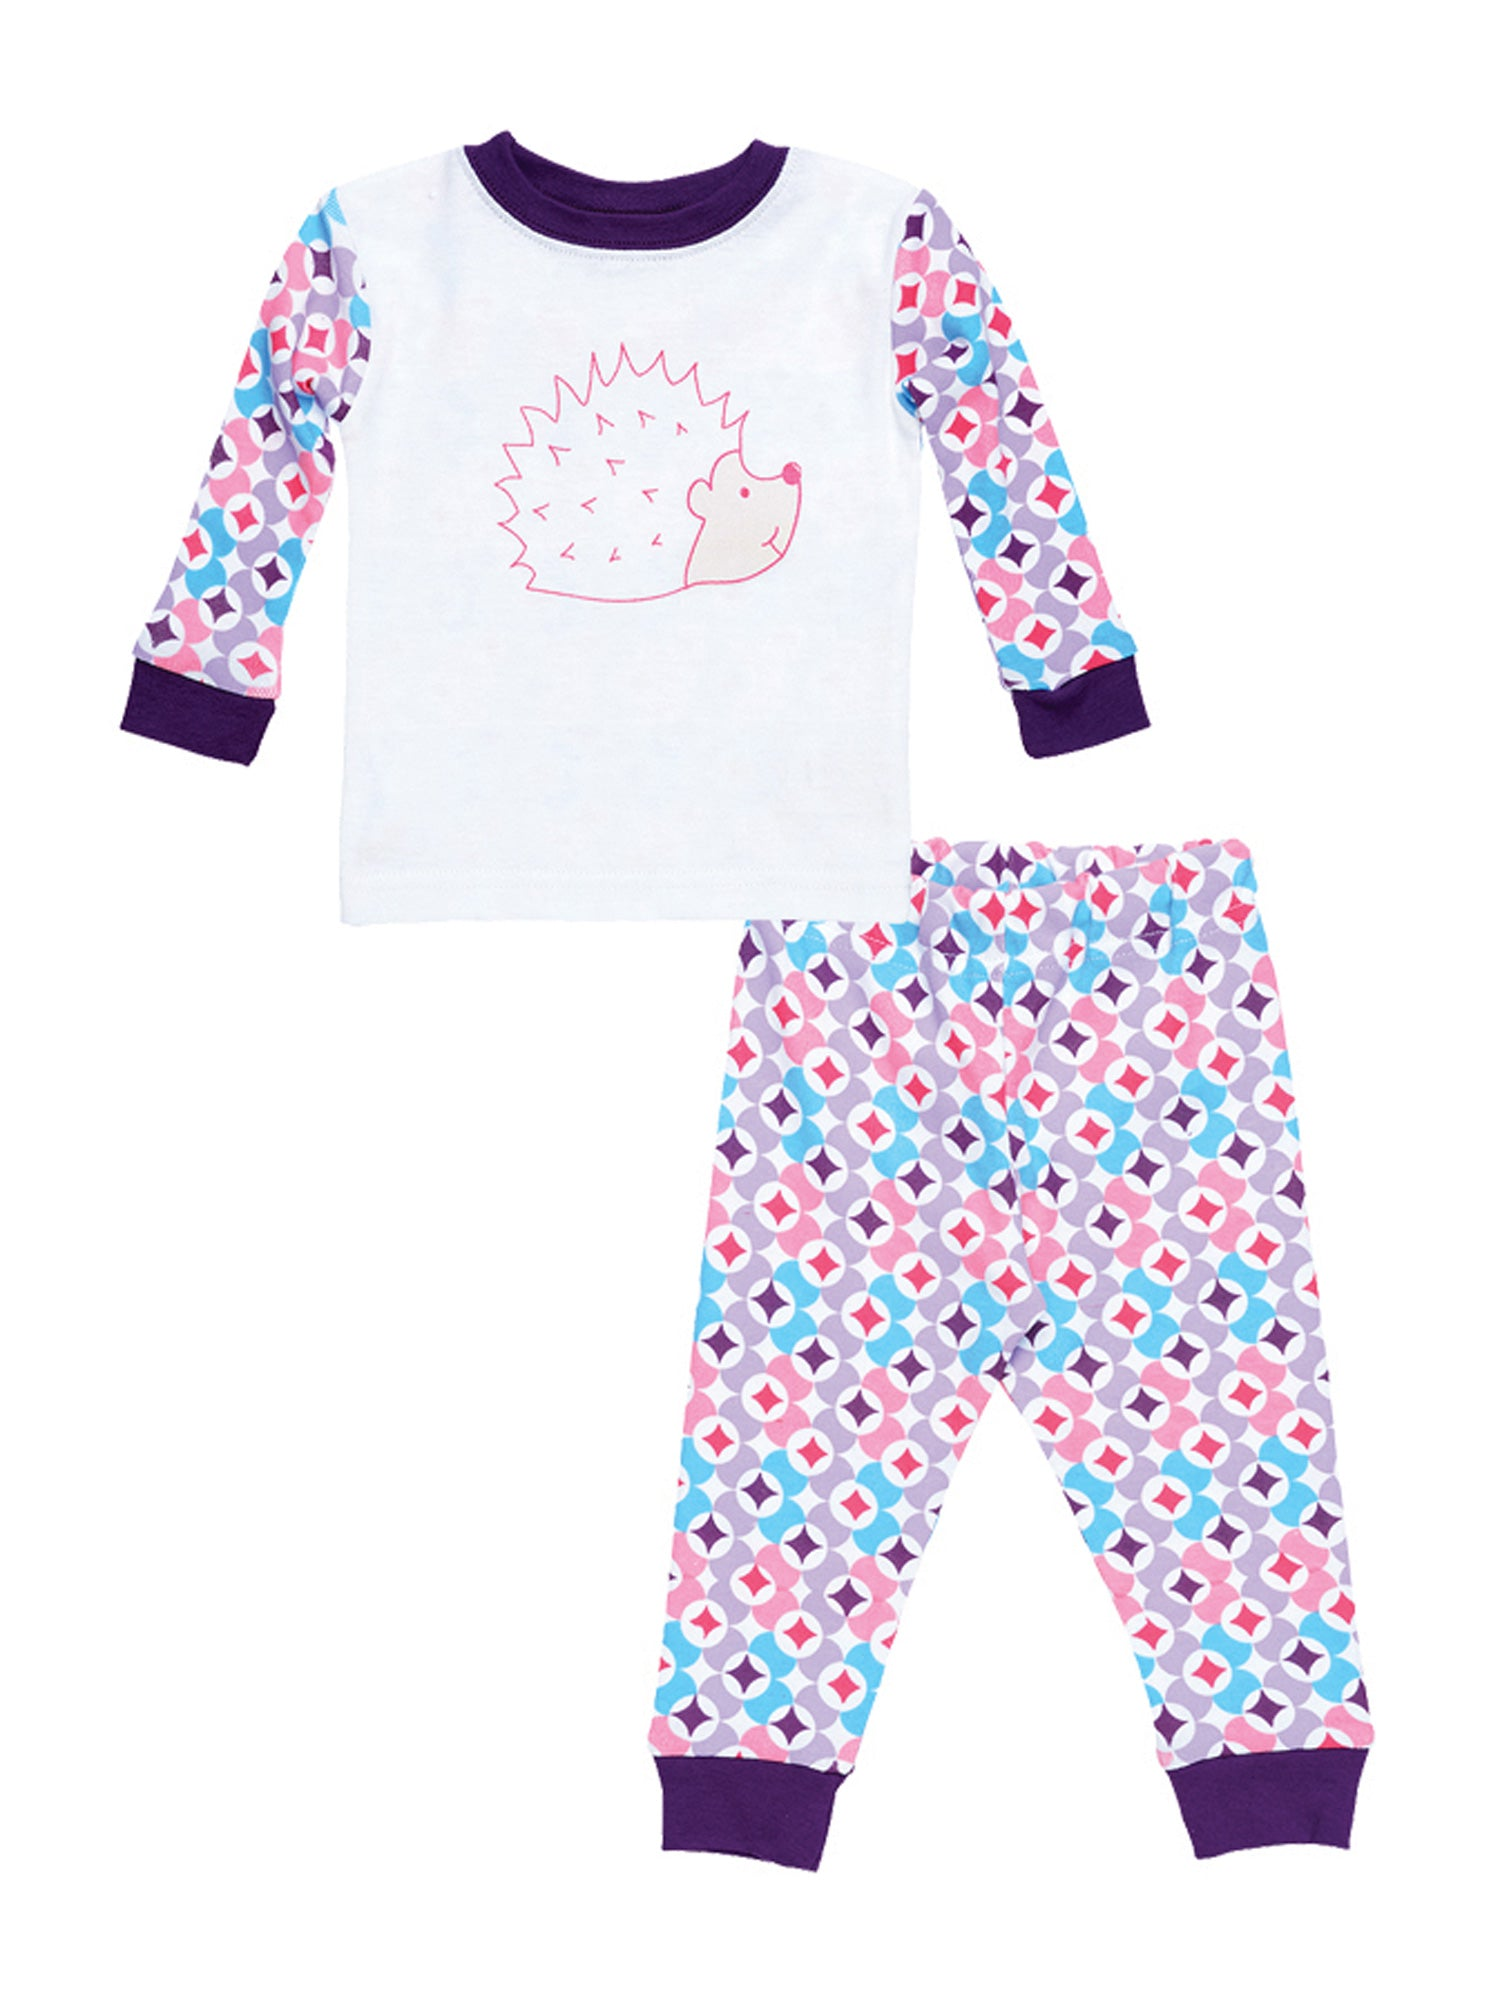 Kids Long Johns - Plum Prism Print